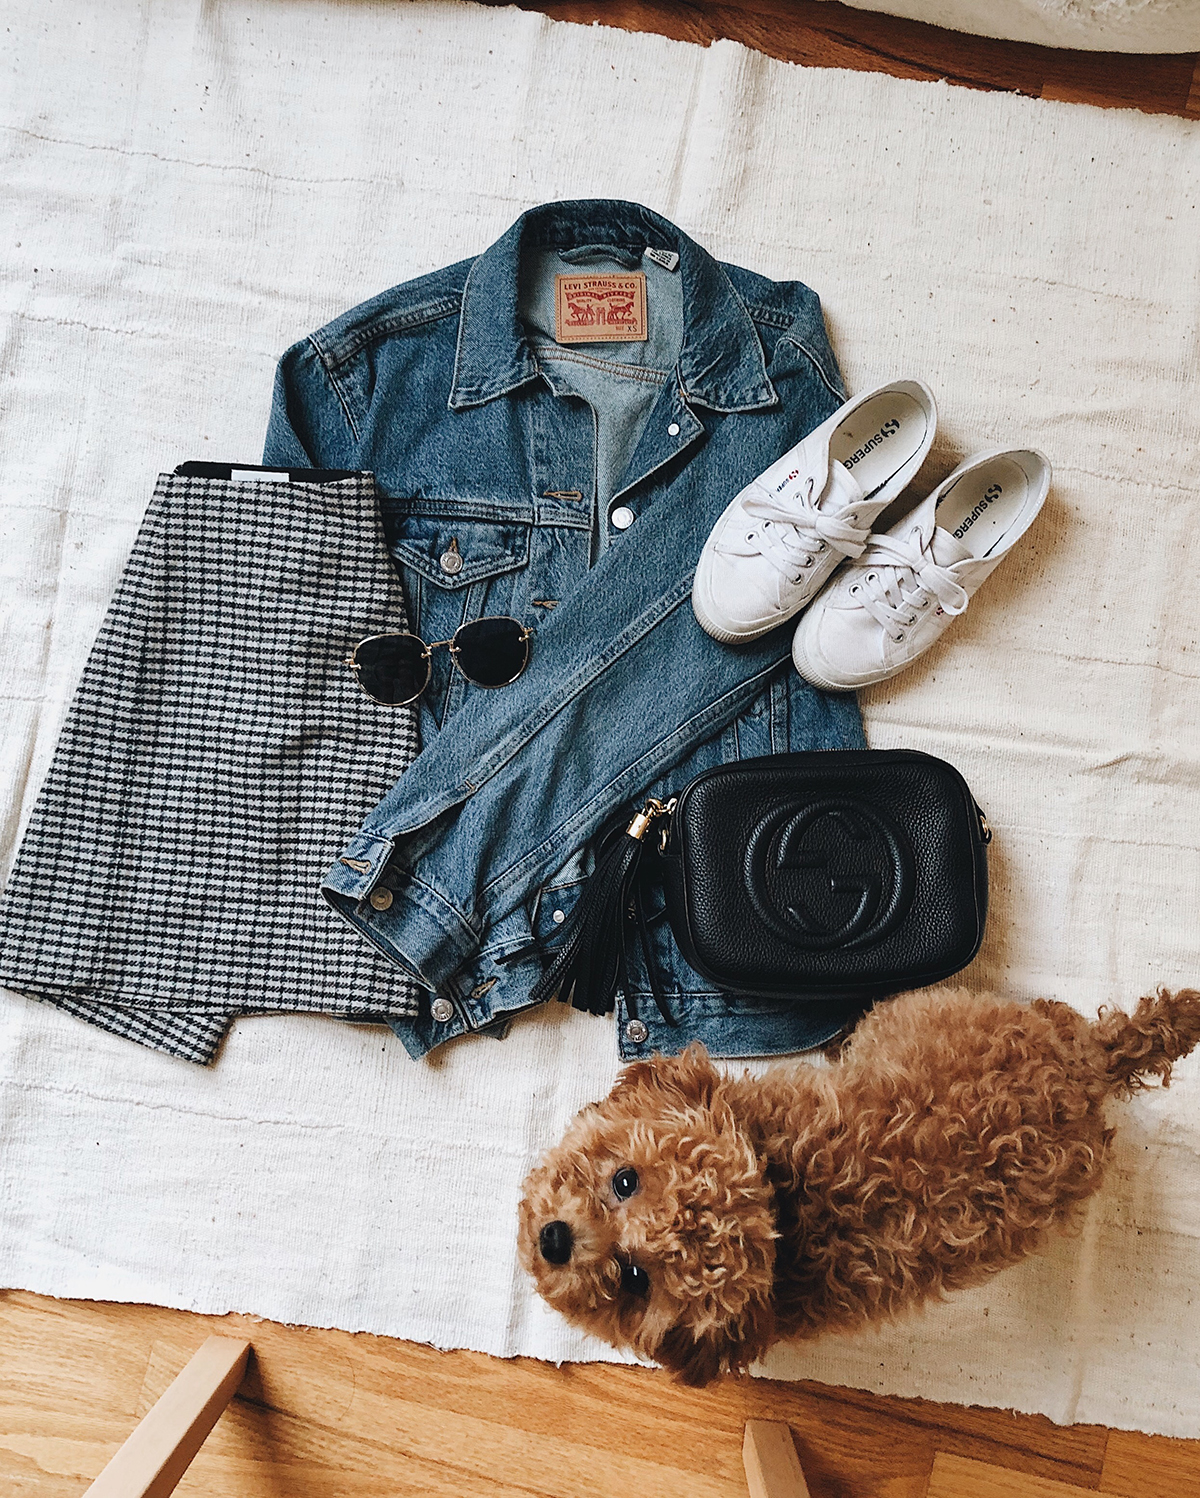 Mini Skirt Denim Jacket Gucci Soho Outfit